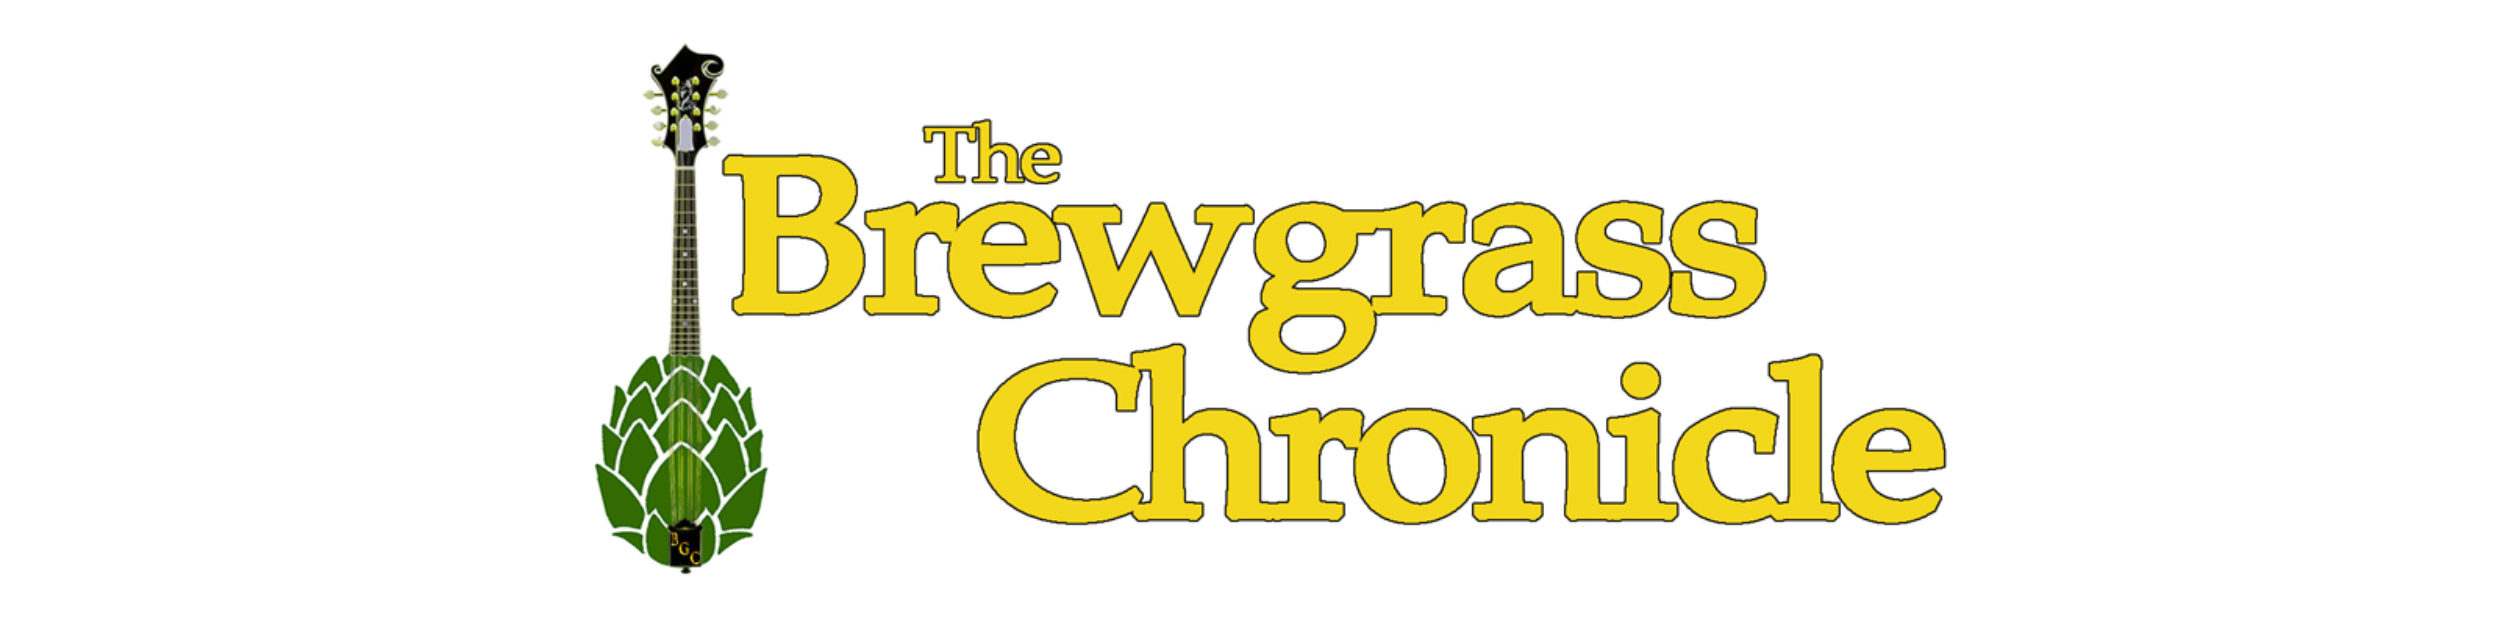 The Brewgrass Chronicle